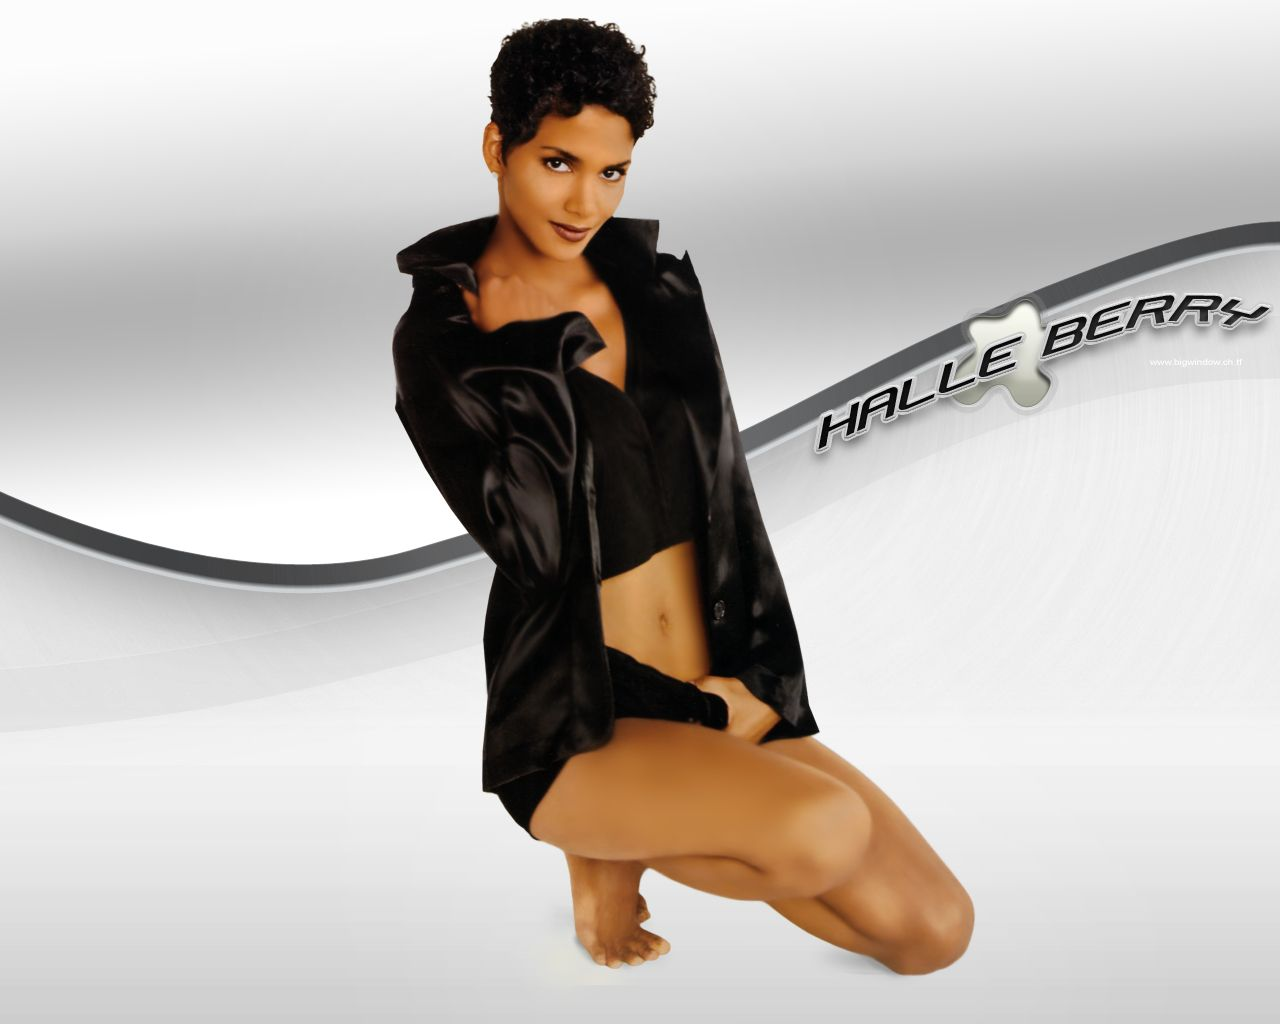 Halle Berry Halle Berry Wallpapers Pictures Of Halle Berry Halle Berry Halle